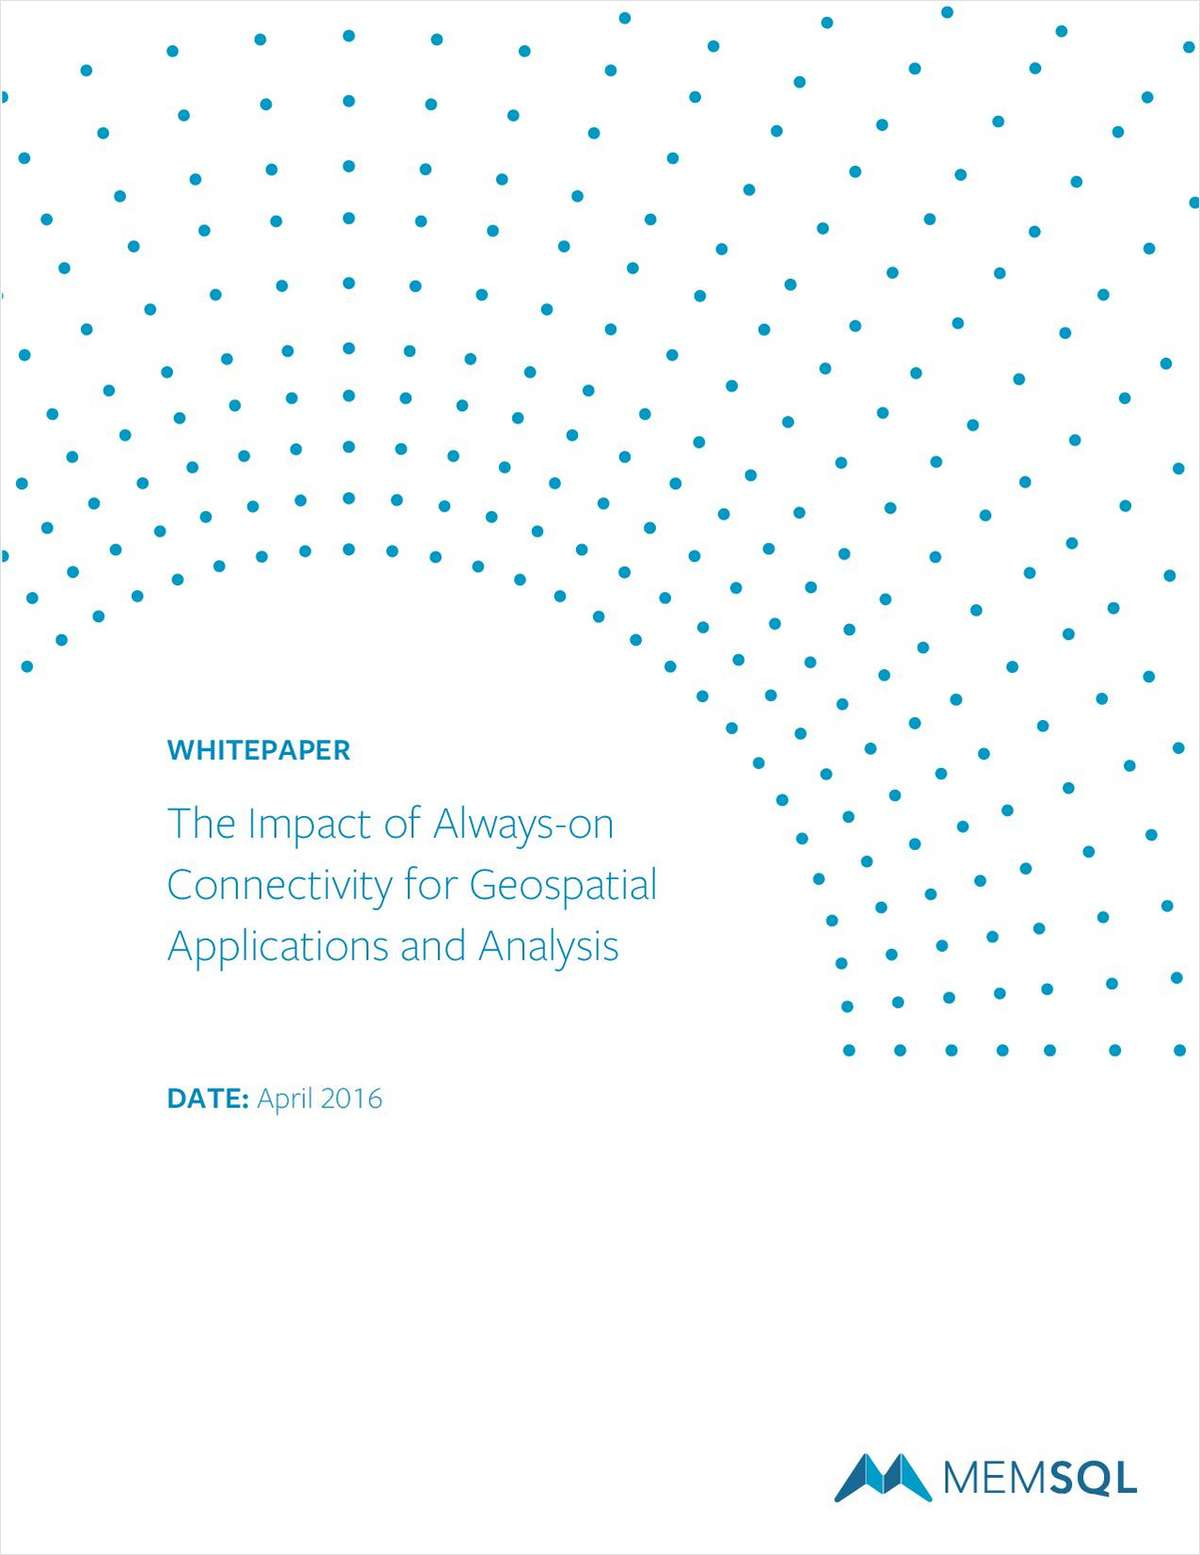 The Impact of Always-on Connectivity for Geospatial Applications and Analysis